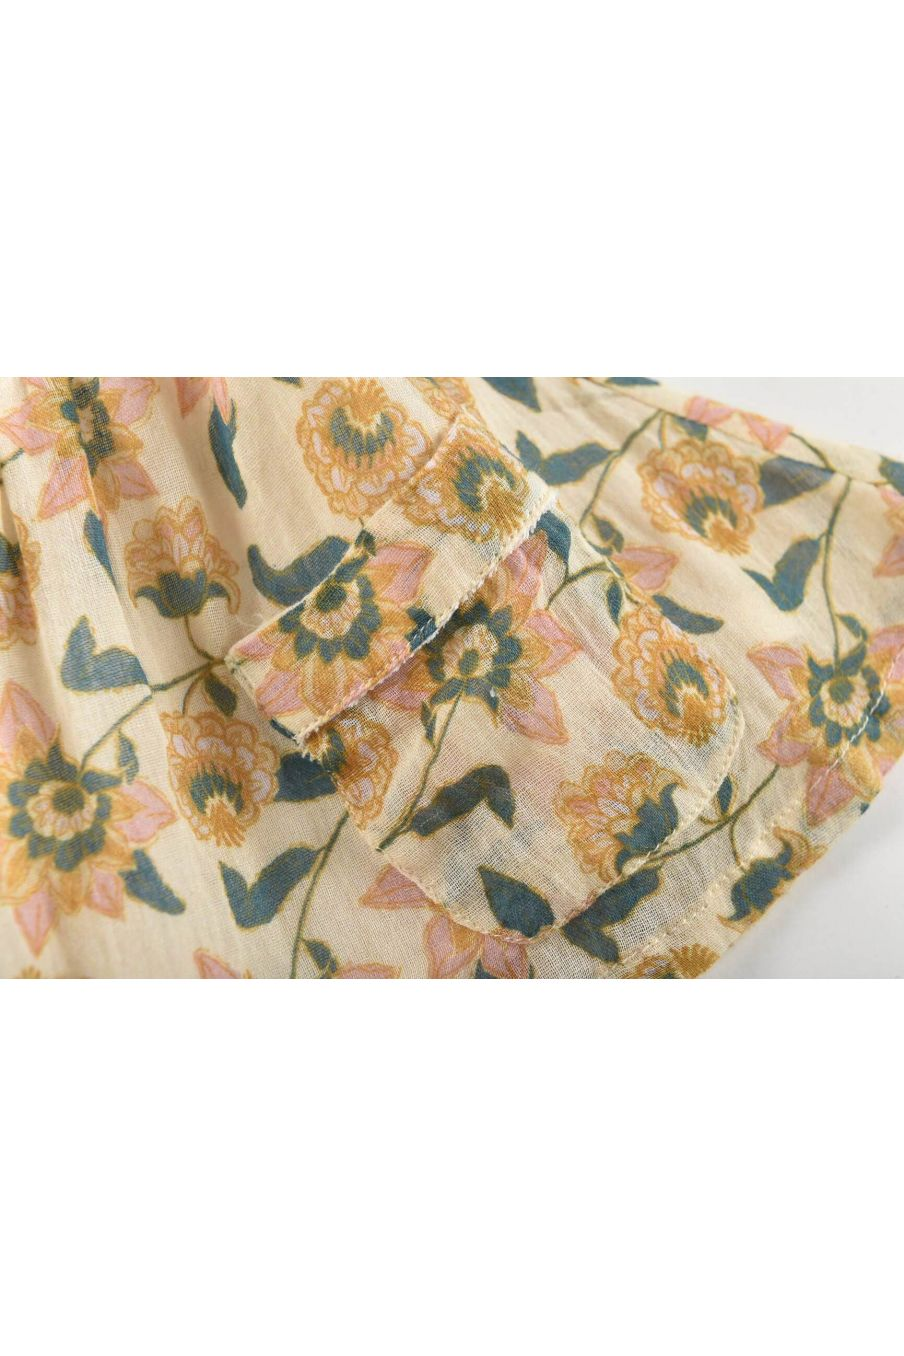 boheme chic vintage jupe fille dollina cream flowers